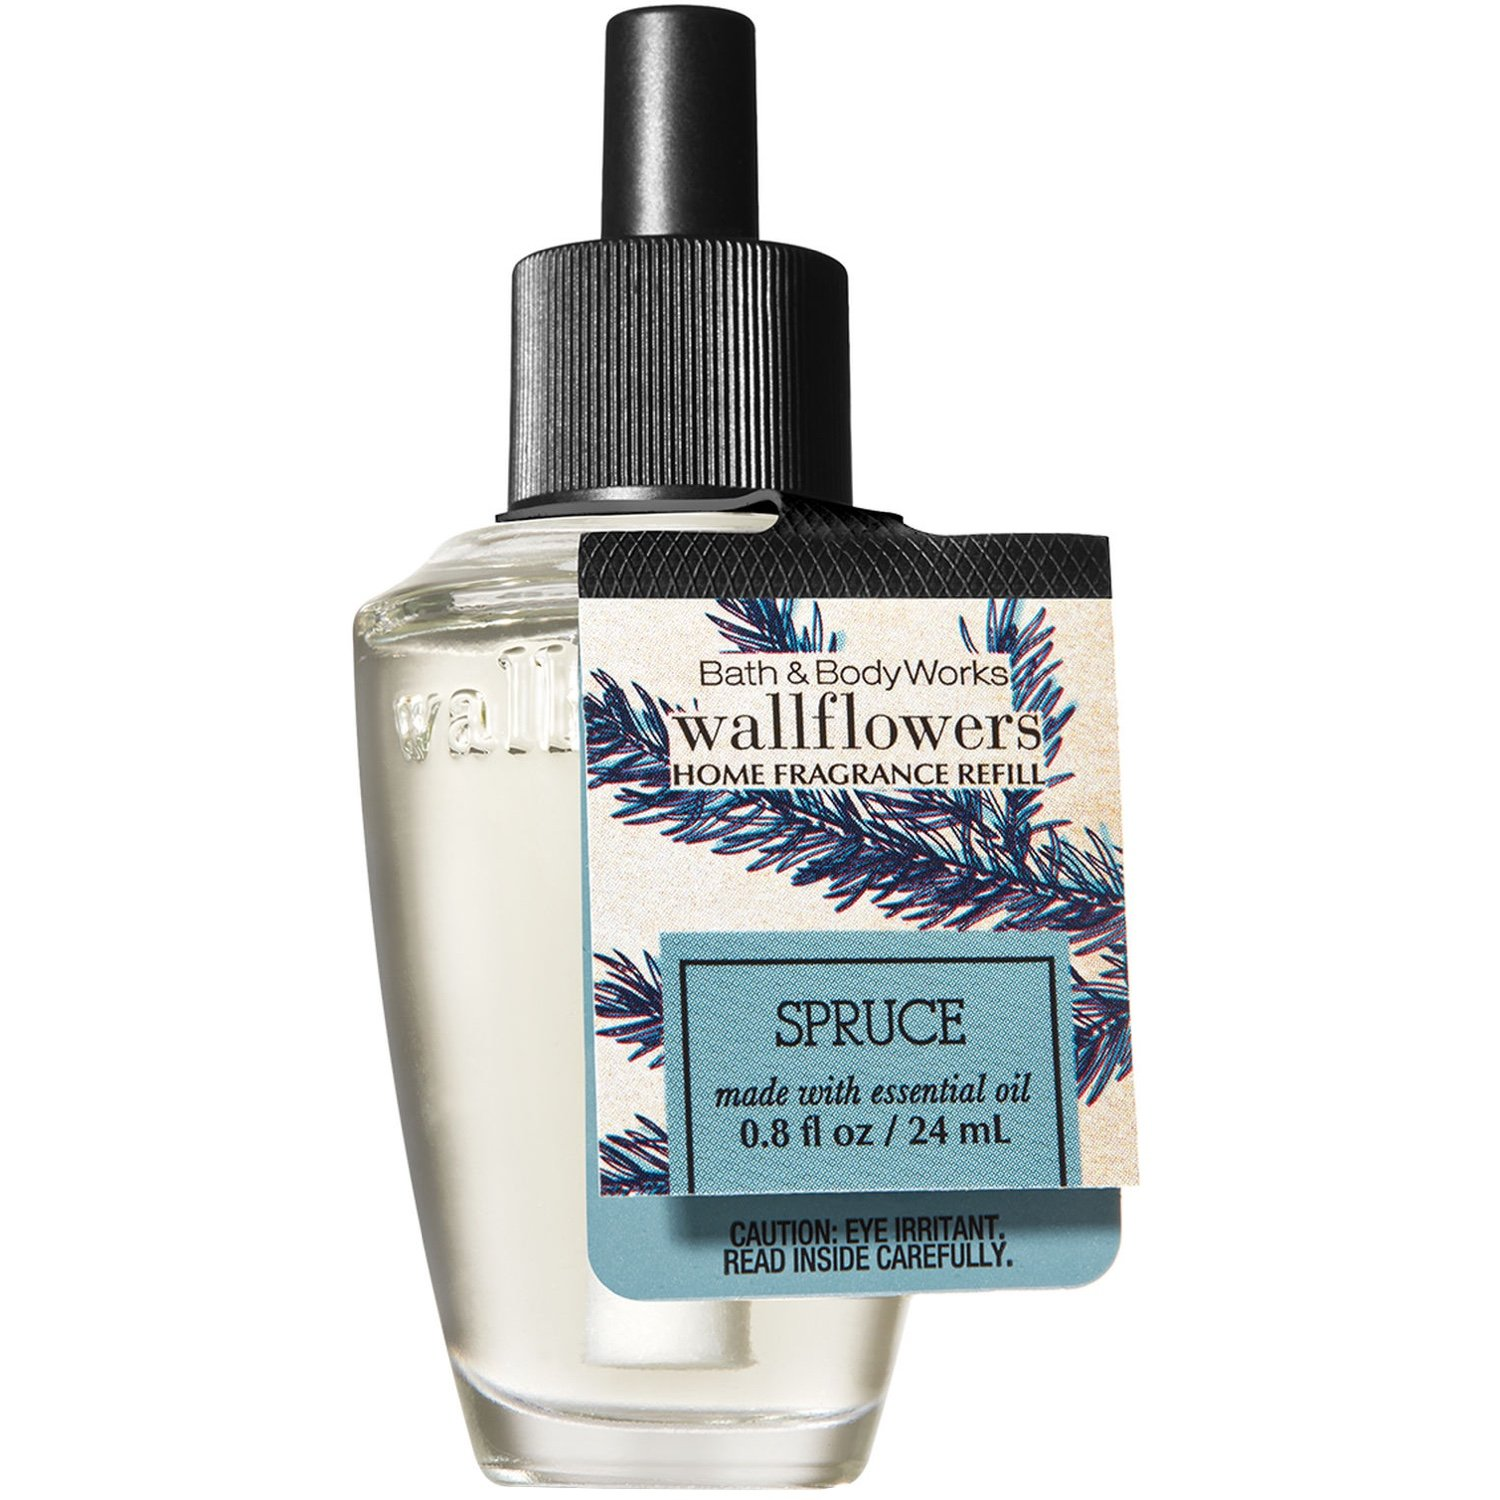 Bath & Body Works Wallflowers Fragrance Refill Bulb Spruce